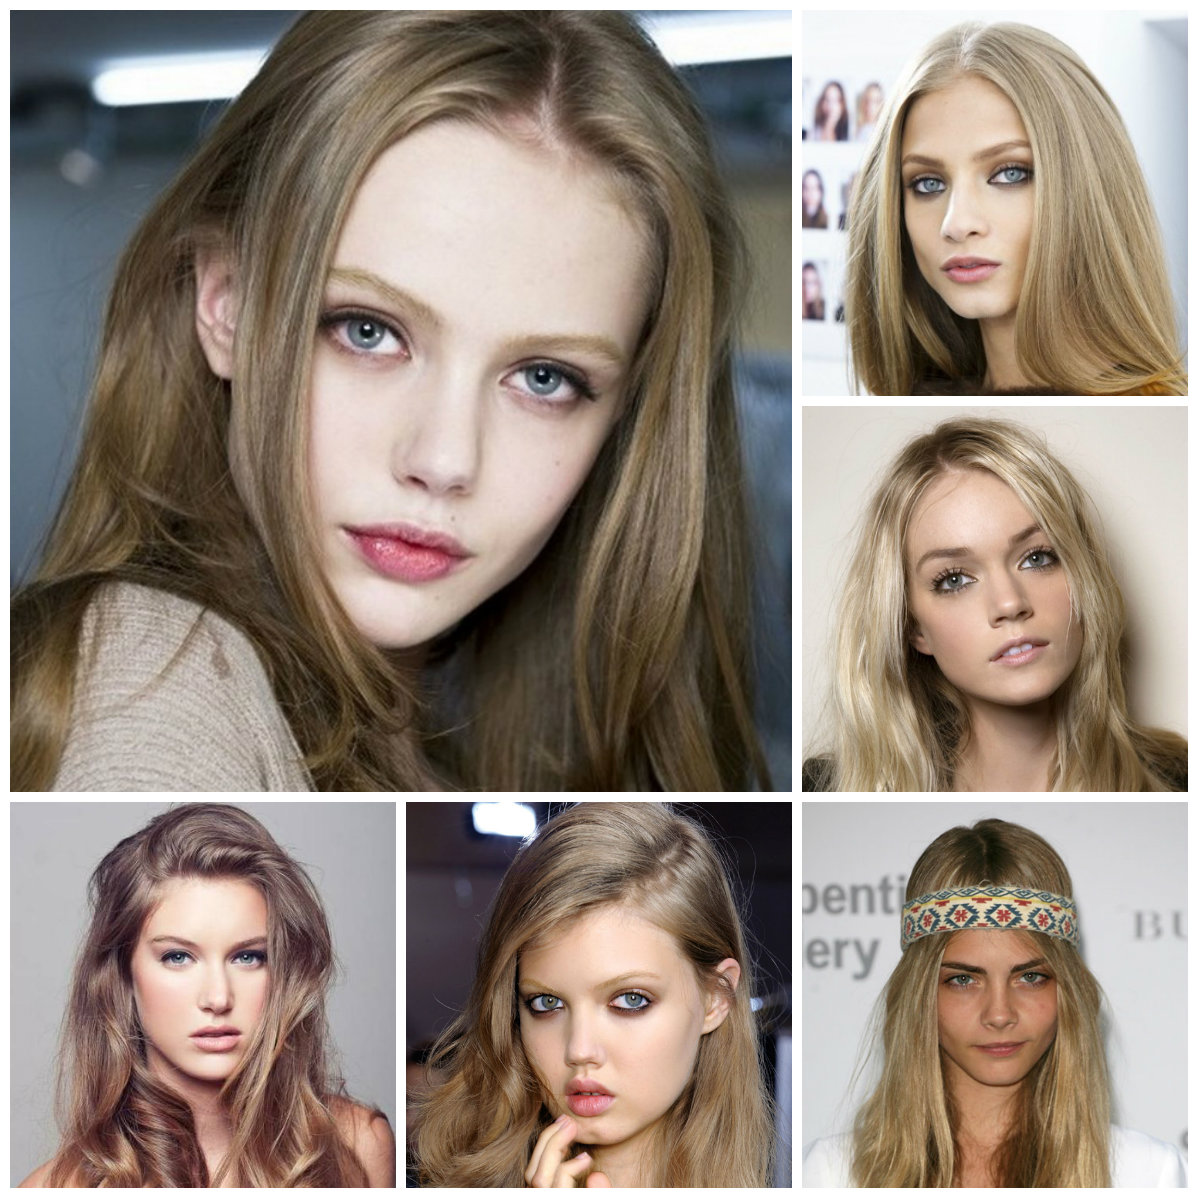 8 Beauty Trends That Will Be Huge in 2017 - Hairstyles ...